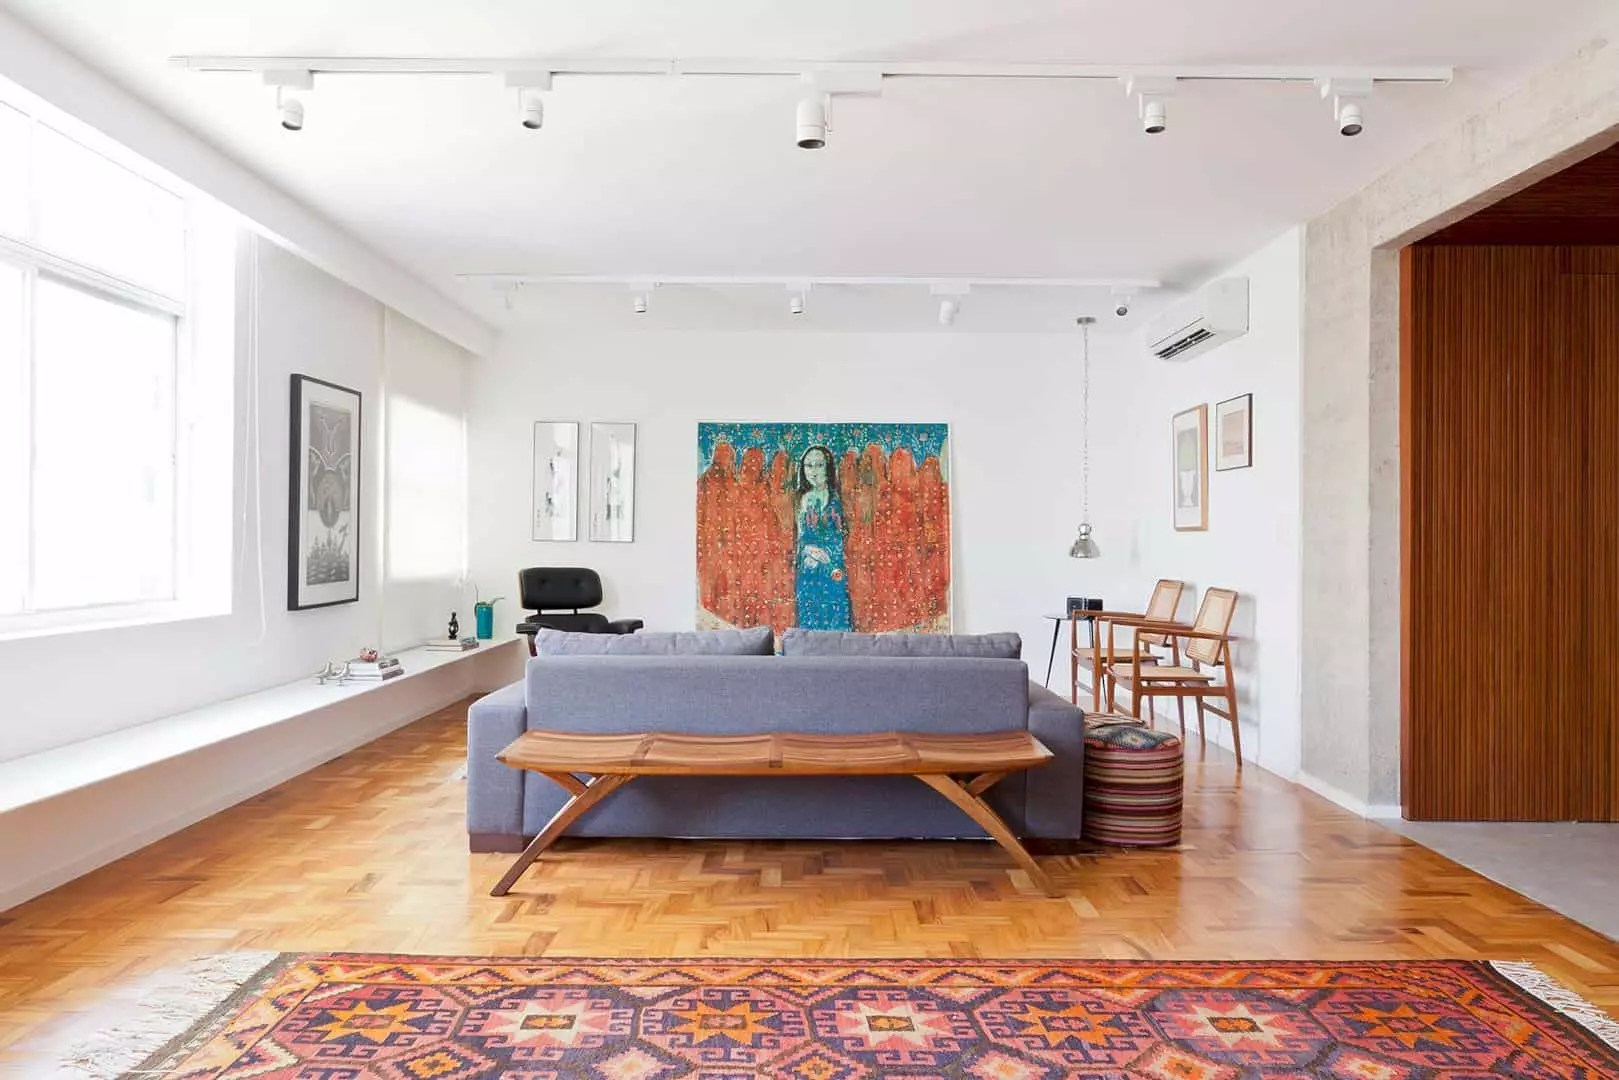 Jardins Apartment: A Comfortable Apartment with Original Identity and Ample Environments